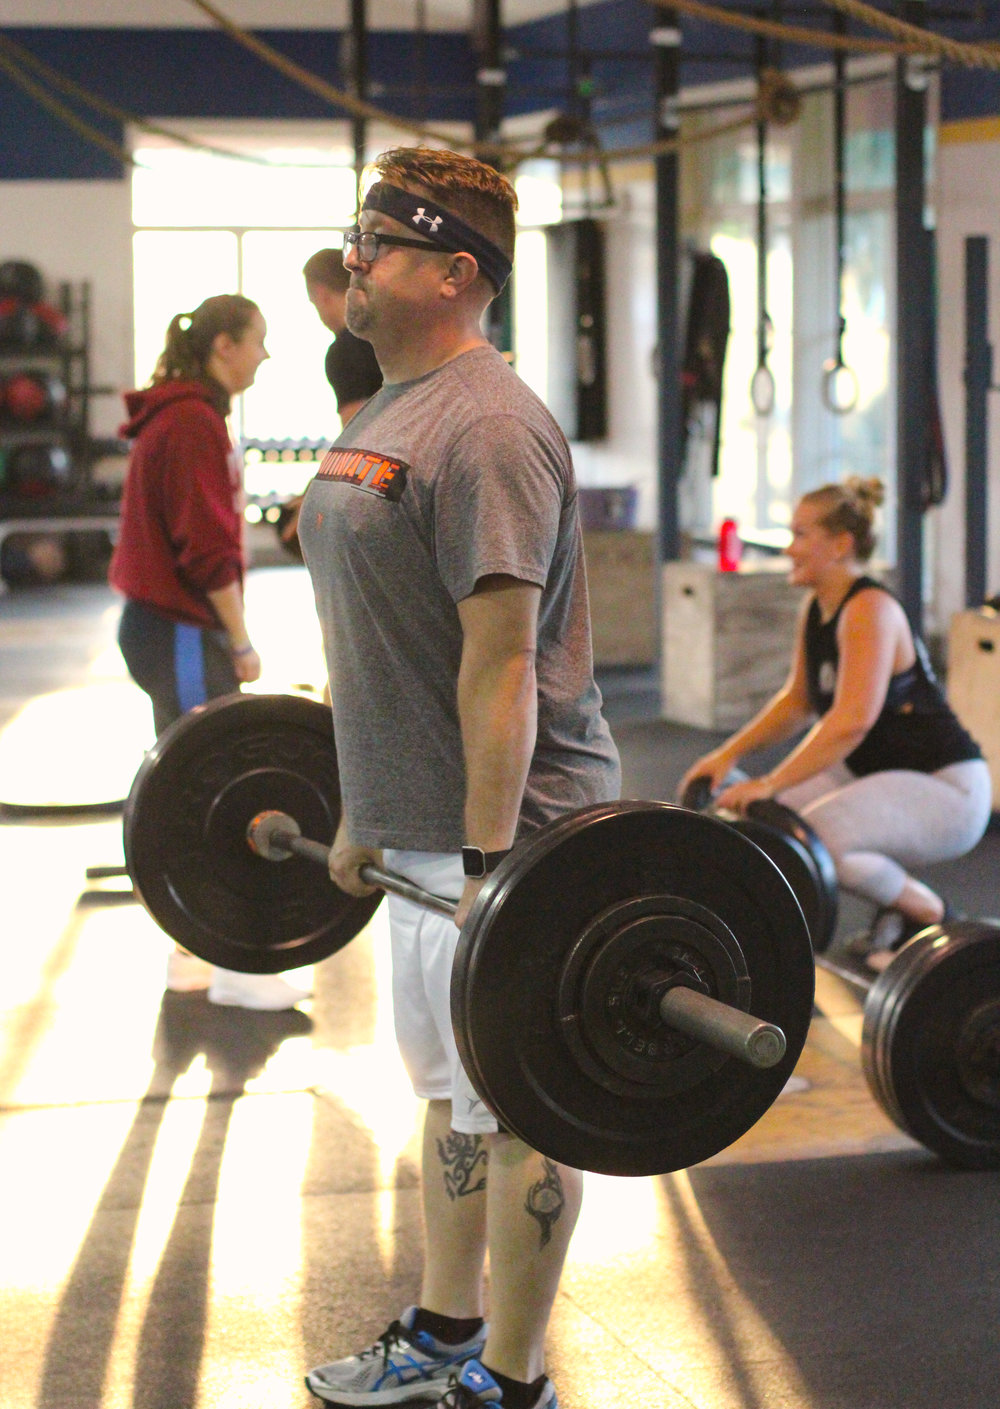 Happiest of Birthdays to PVCF athlete, Tommie Peckenpaugh! And congratulations on completing your very first month with Pioneer Valley CrossFit; you're doing great, Tommie!